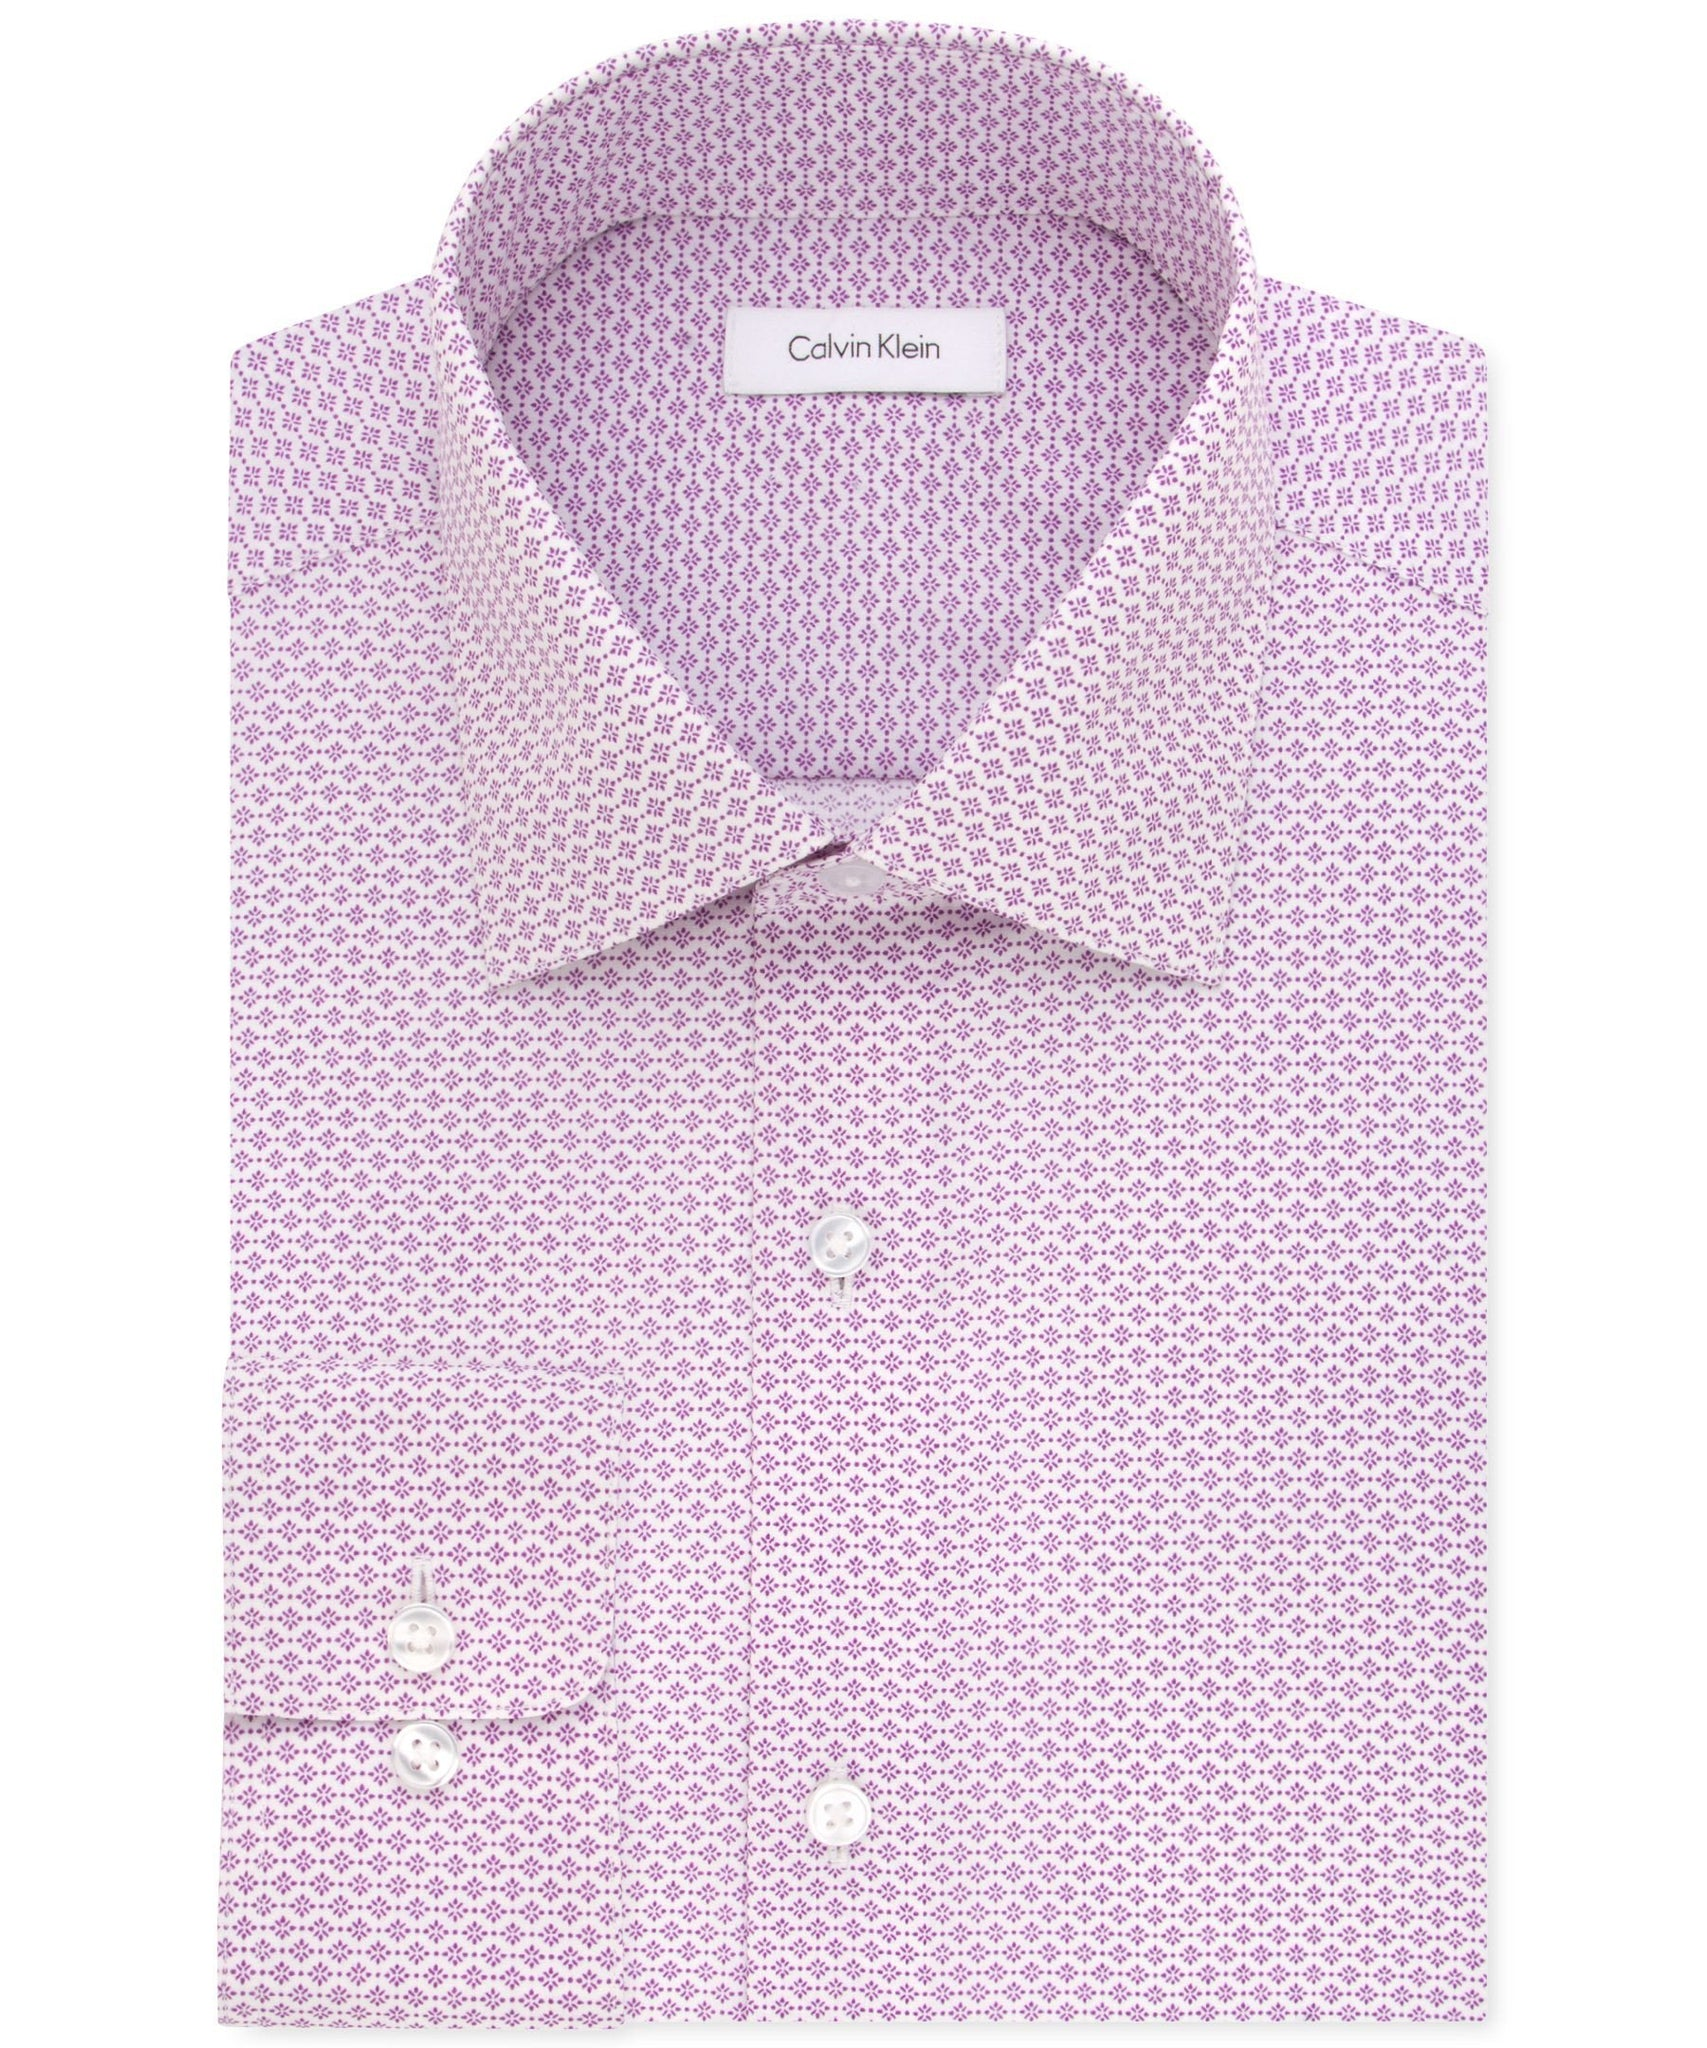 Calvin Klein STEEL Classic/Regular Fit Non-Iron Performance Purple Print Dress Shirt